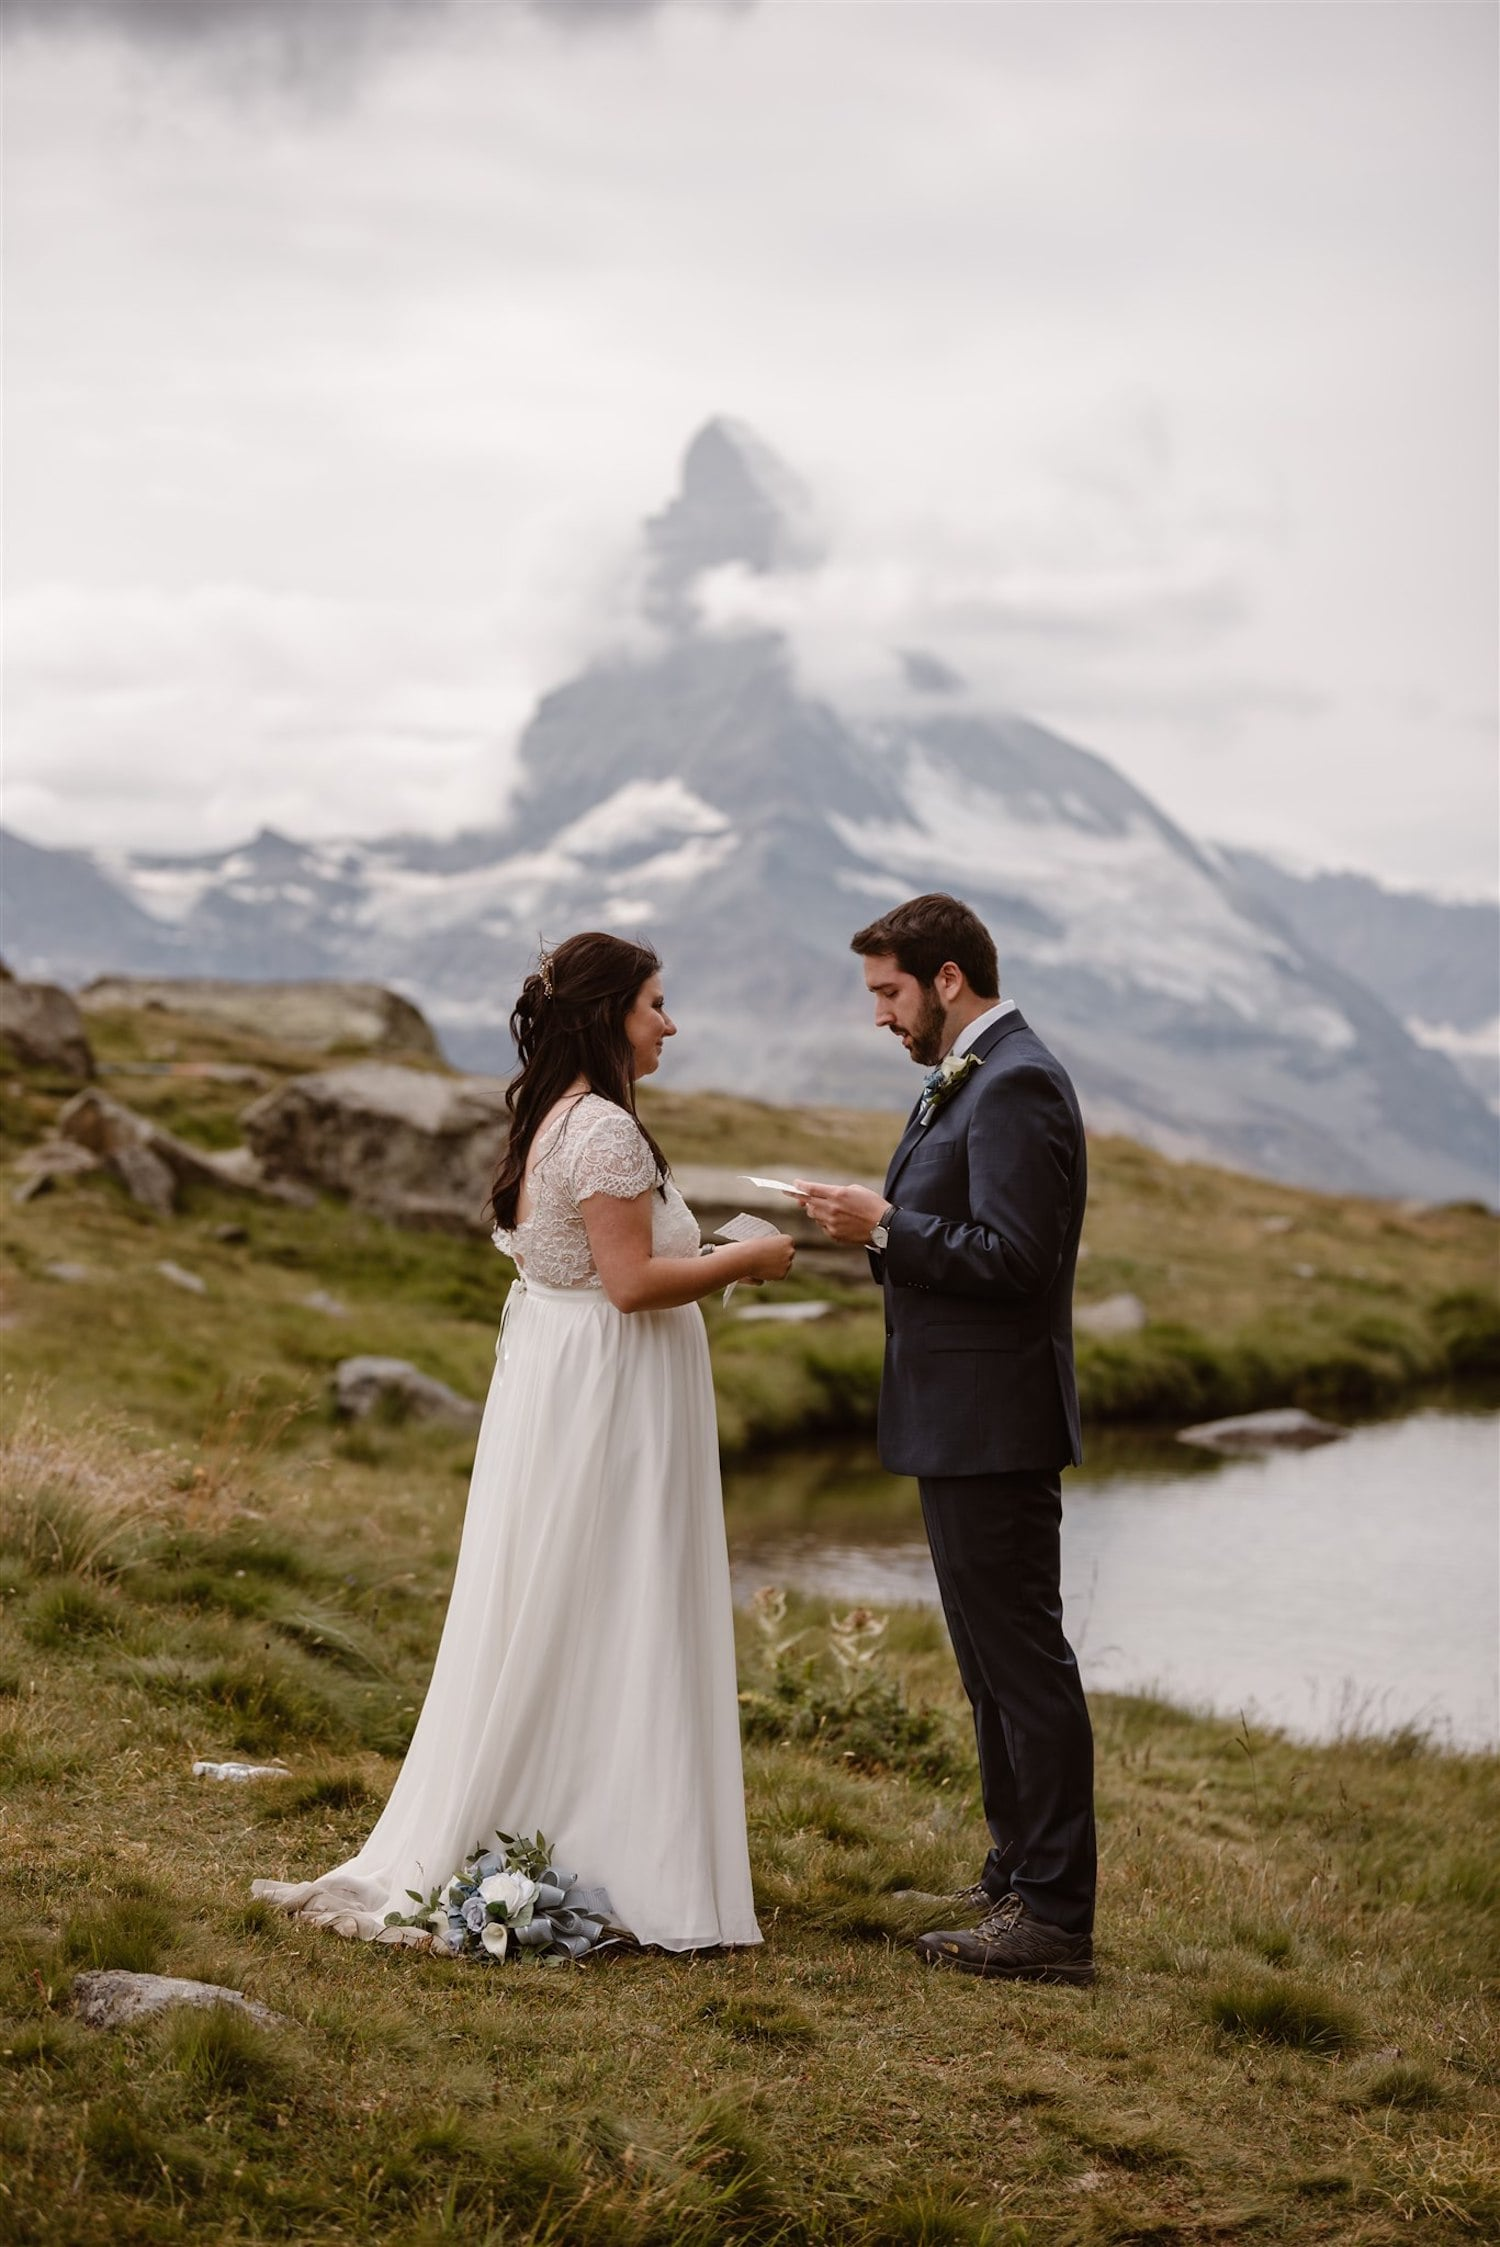 Couple exchanging vows in front of the Matterhorn in Zermatt